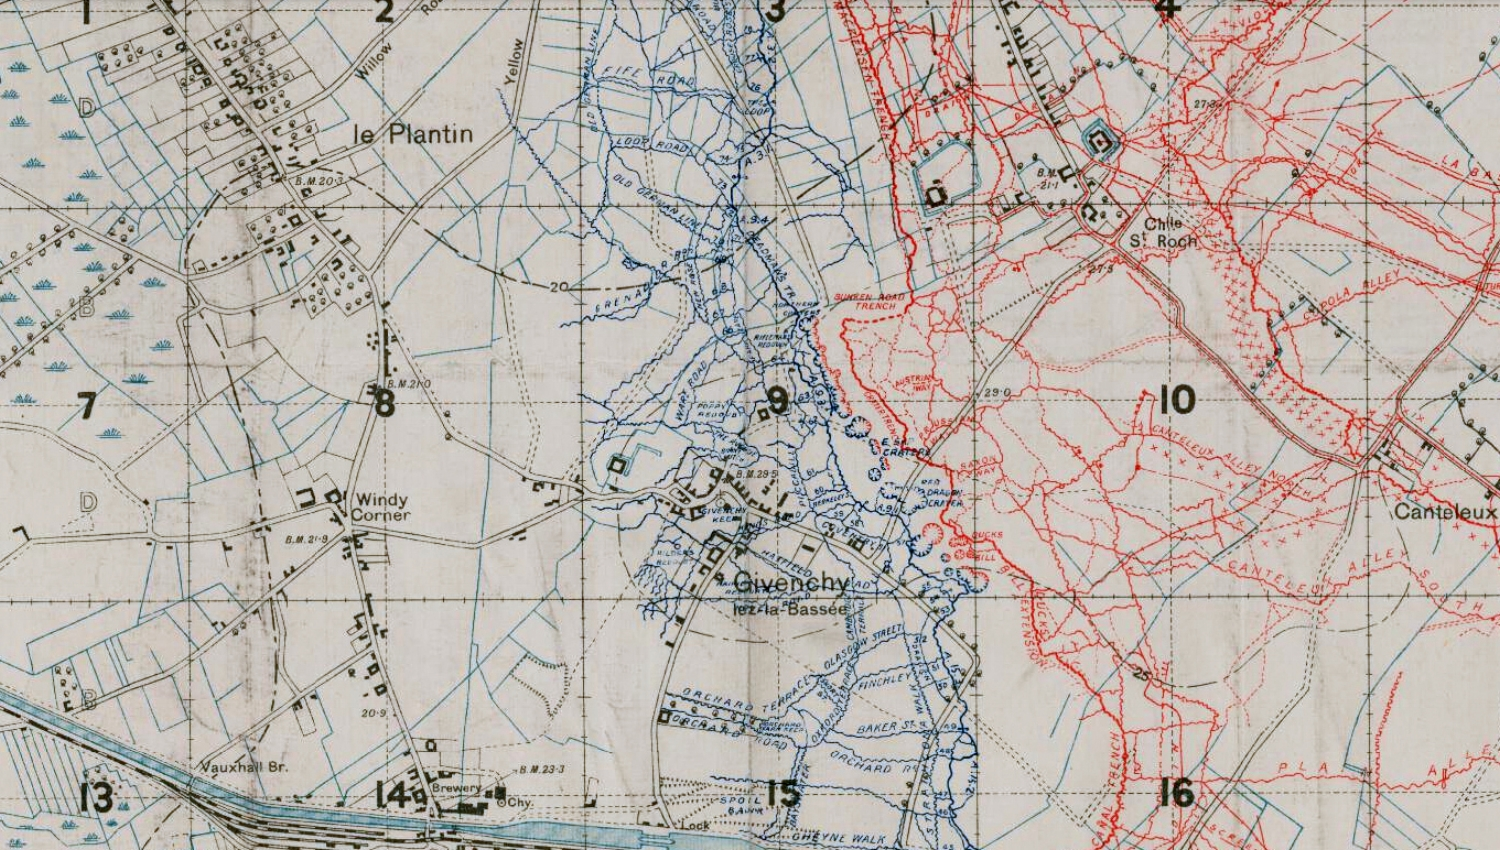 Section of the British WW1 Trench map 36C N.W. showing the trenches in the Givenchy­-lès-la-Bassee area